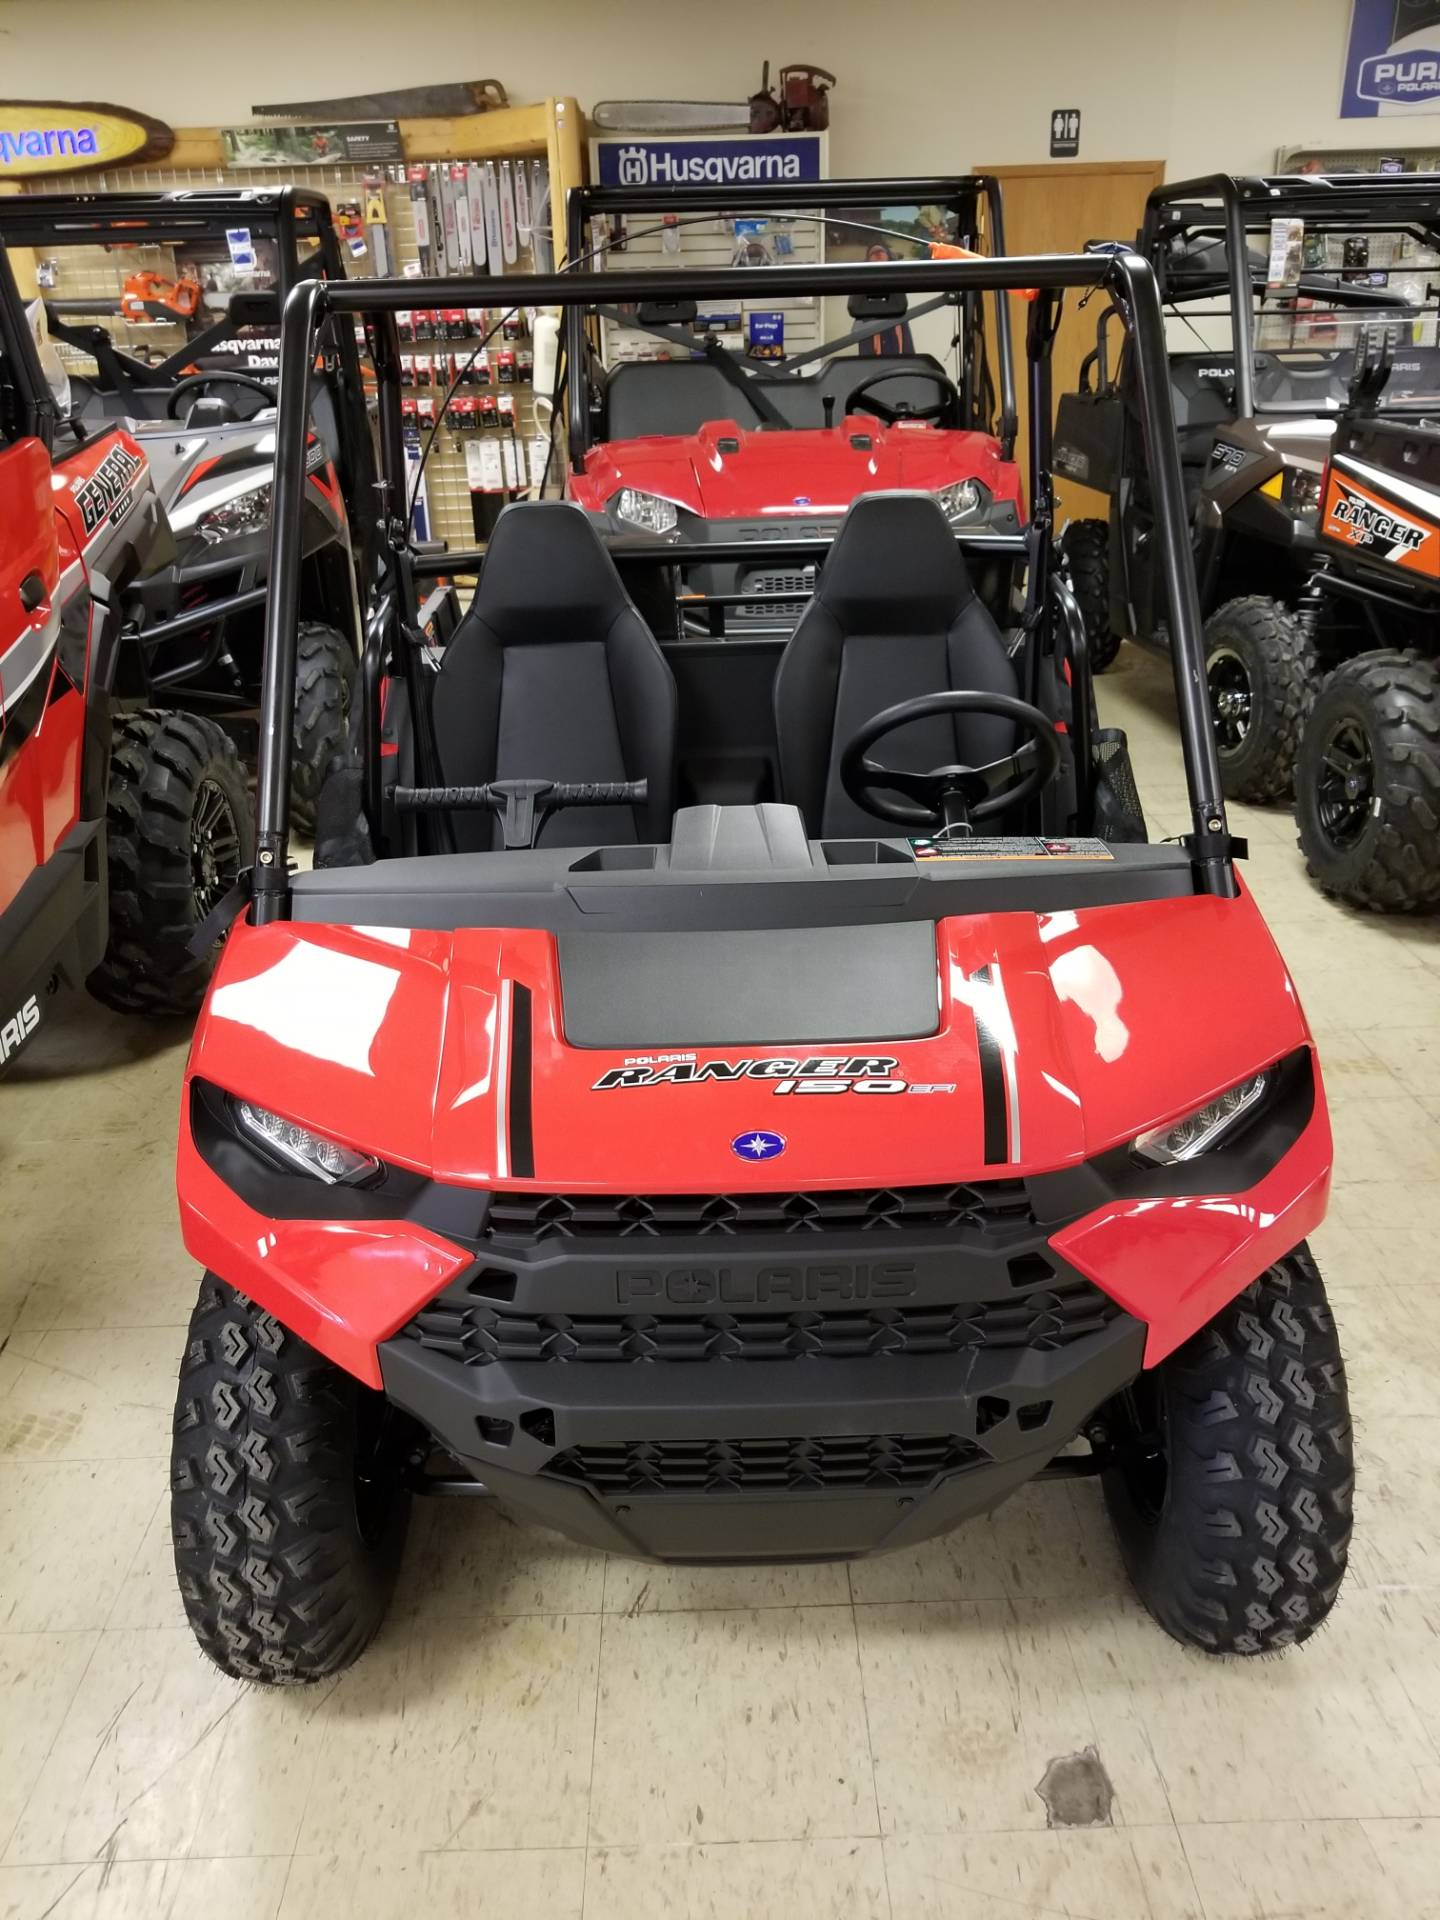 2019 Polaris Ranger 150 EFI in Bigfork, Minnesota - Photo 1